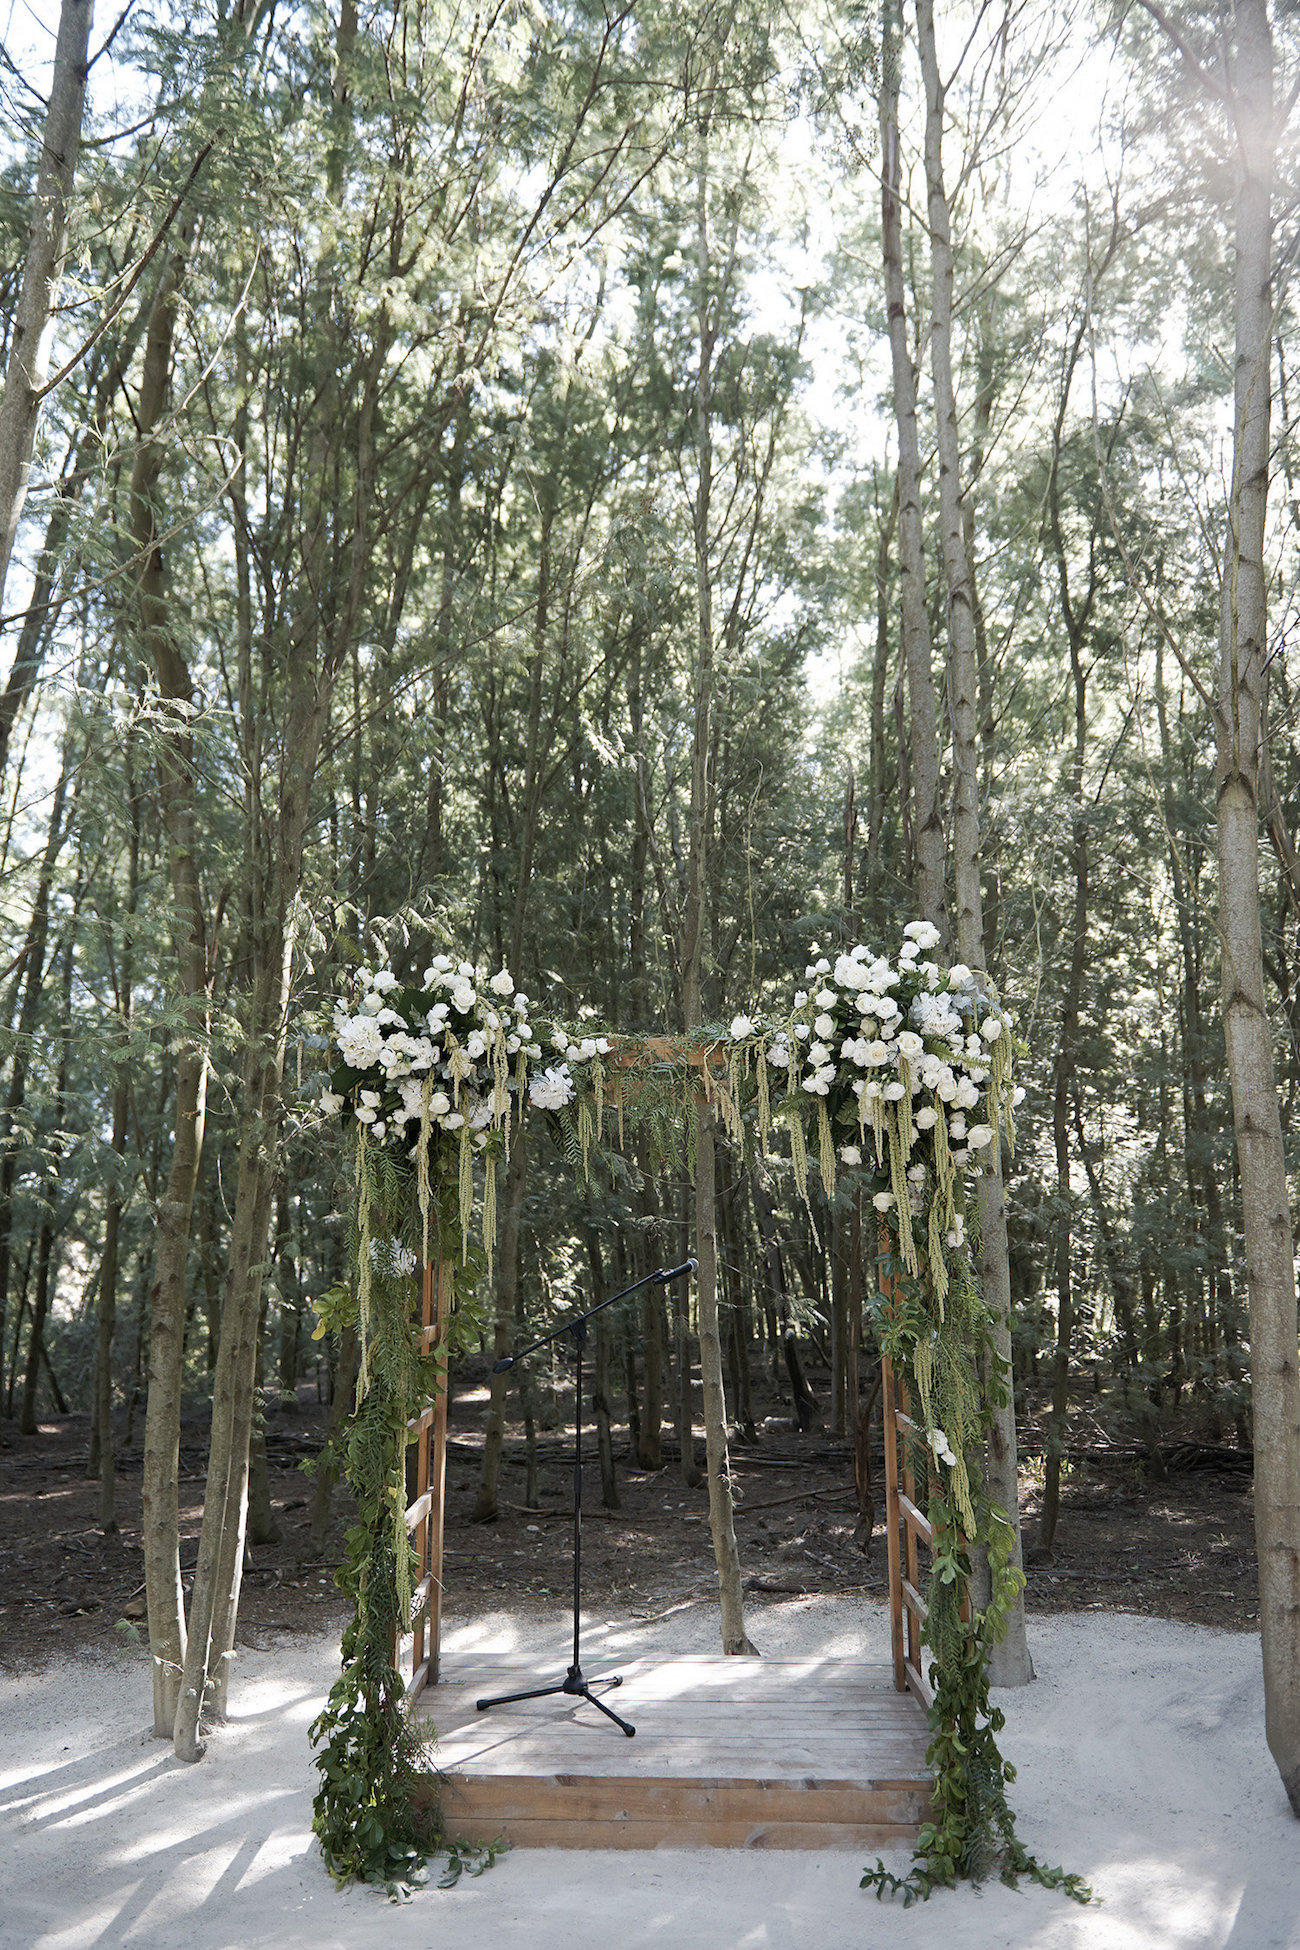 Wooden Floral Ceremony Arch   Image: Knit Together Photography